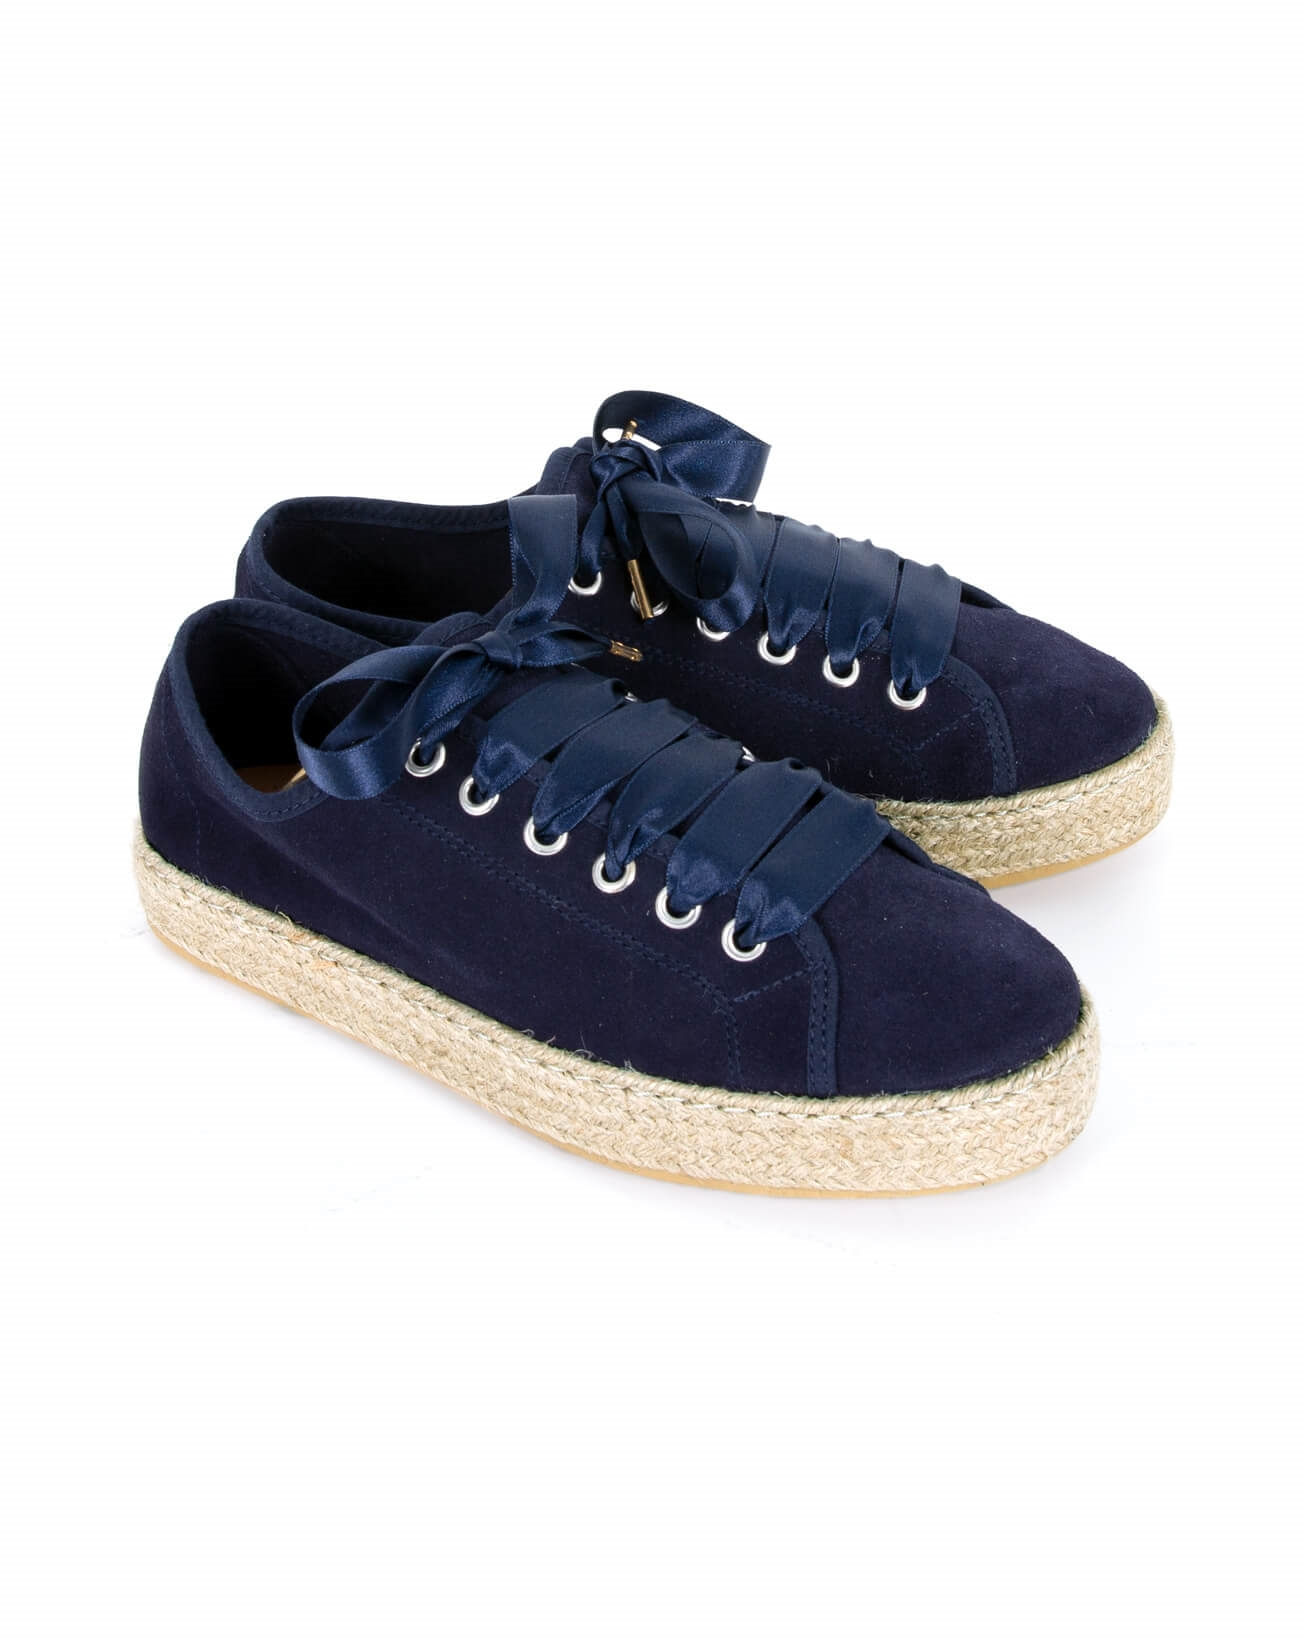 7586_lux-espadrille-pumps_pair_navy_comp.jpg